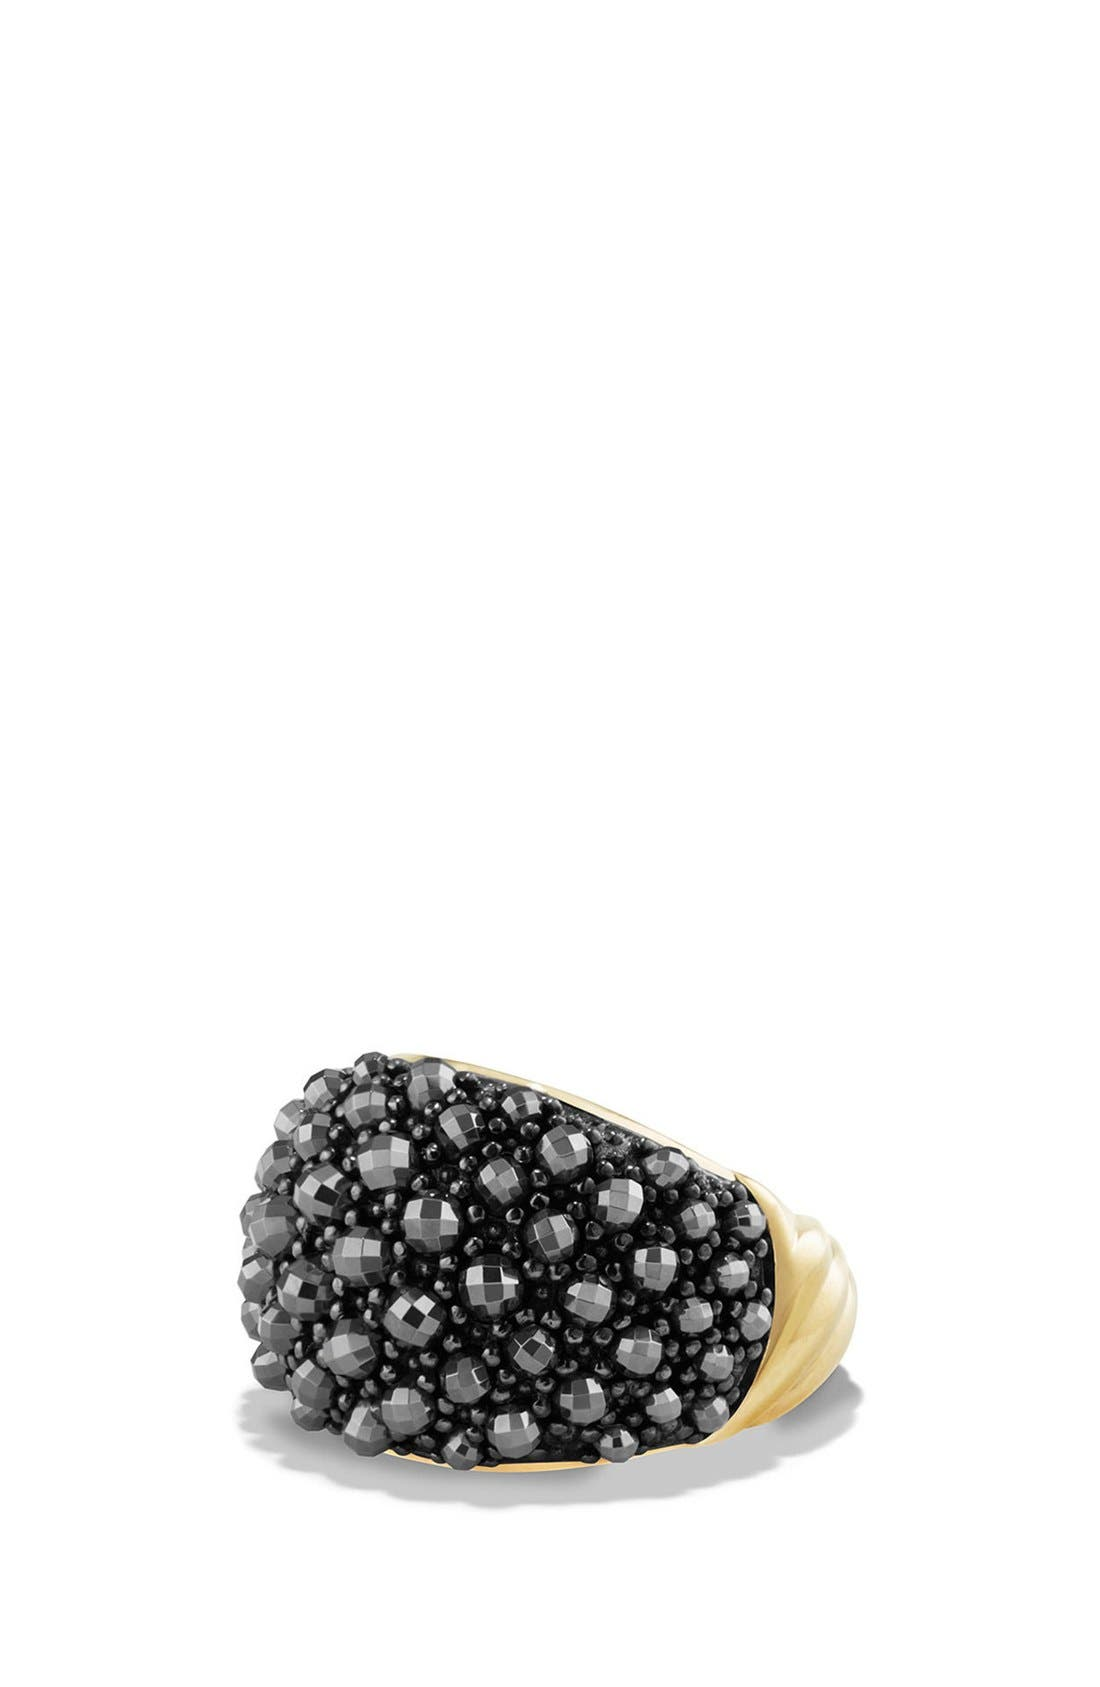 David Yurman Osetra Dome Ring with 18K Gold